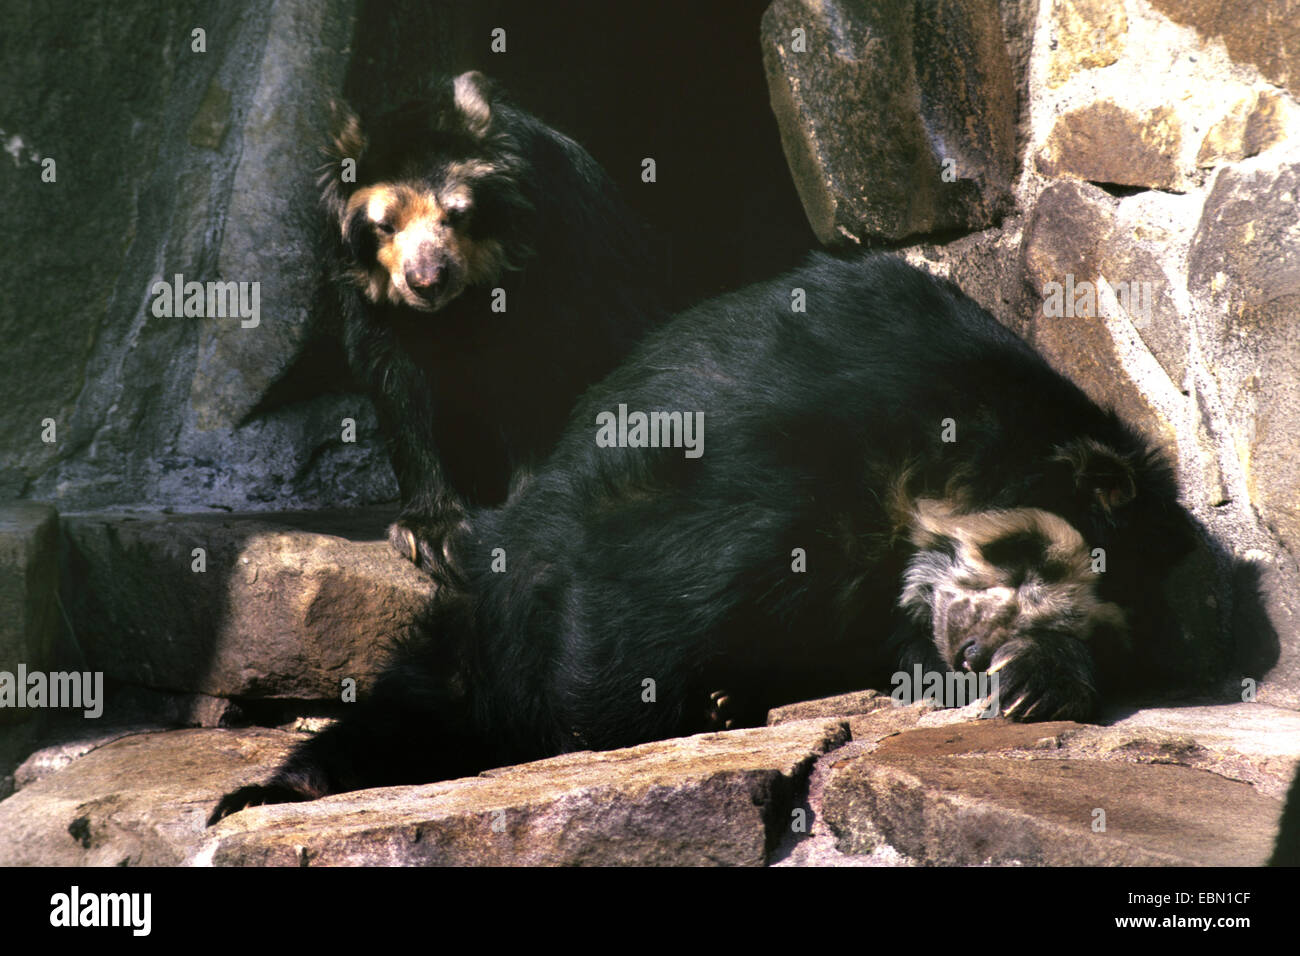 Spectacled bear, Andean bear (Tremarctos ornatus), two Andean bears on a rock - Stock Image